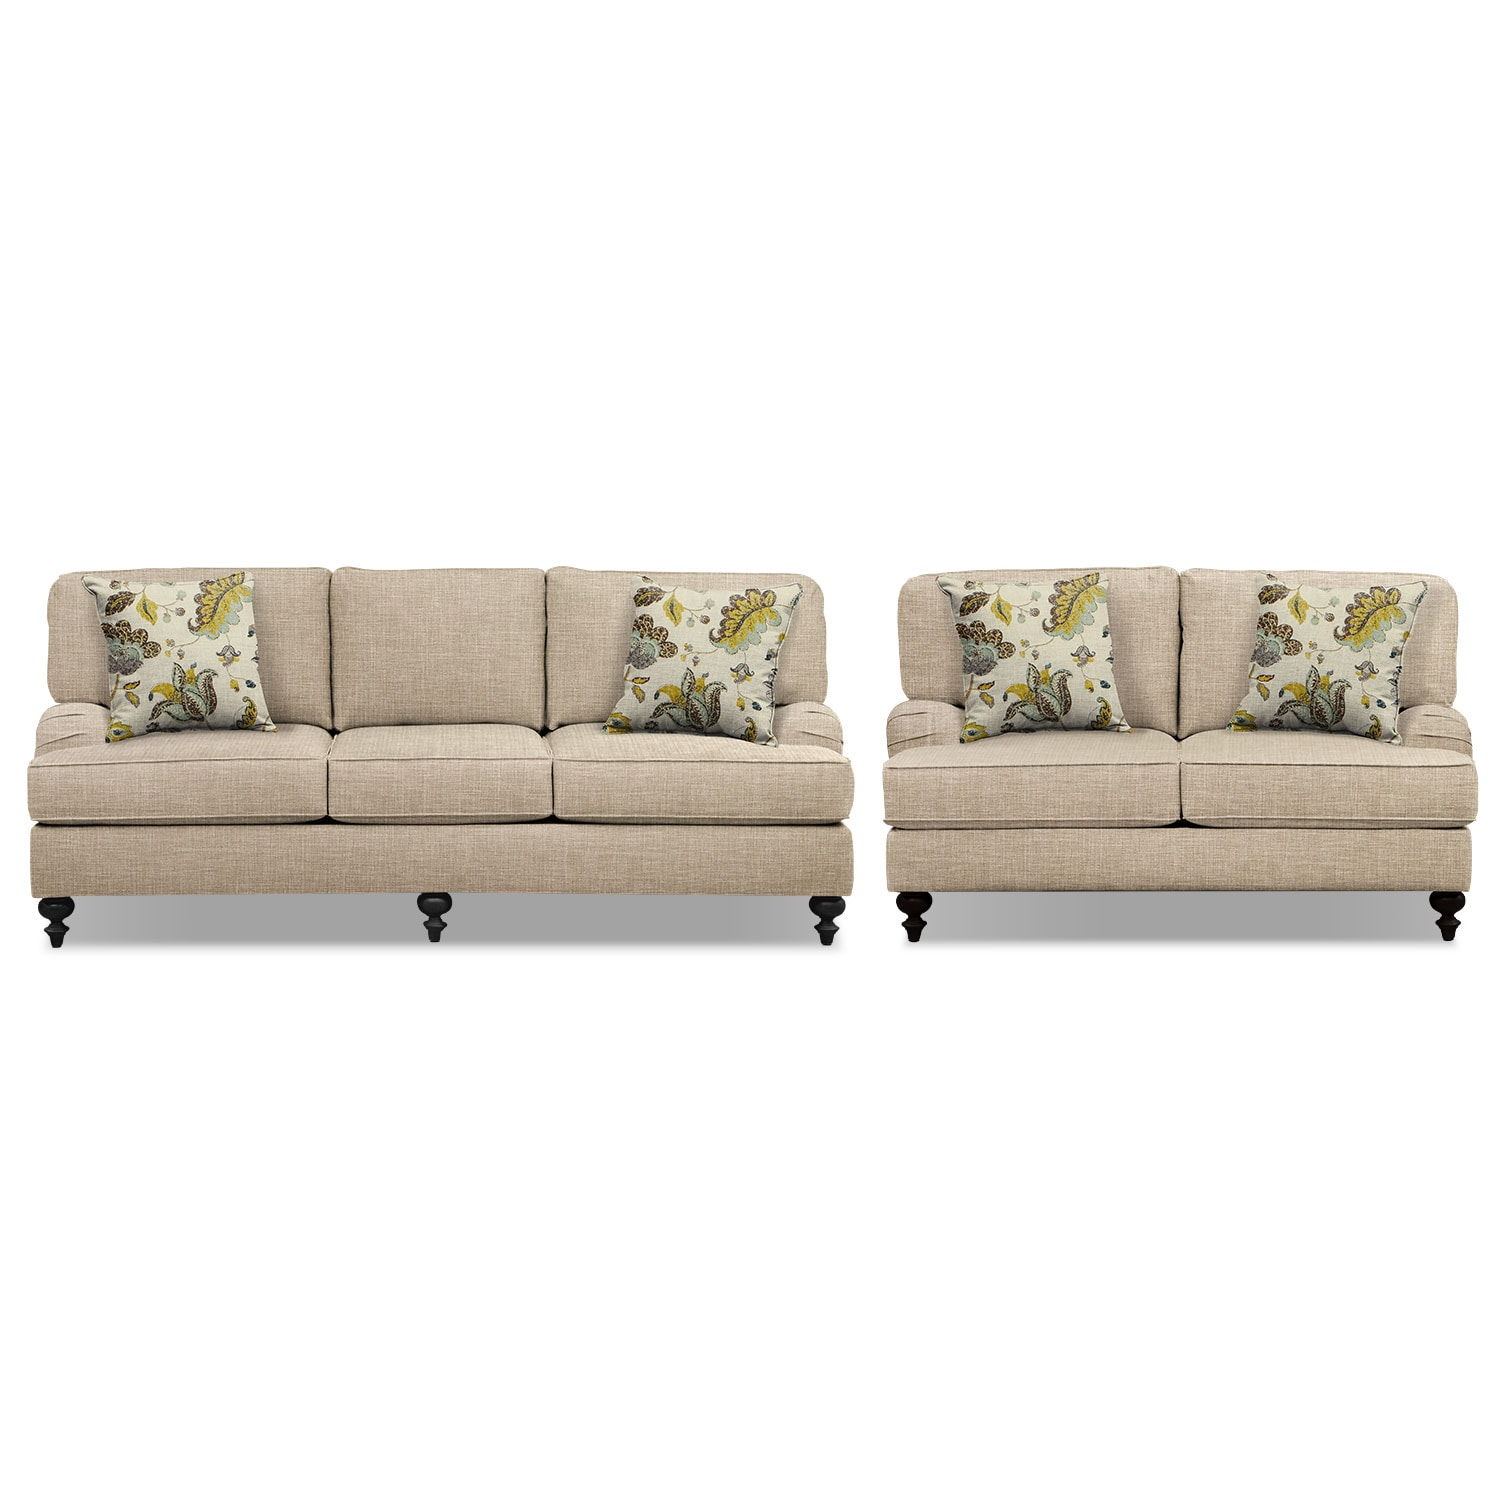 "Avery Taupe 86"" Sofa and 62"" Sofa Set"